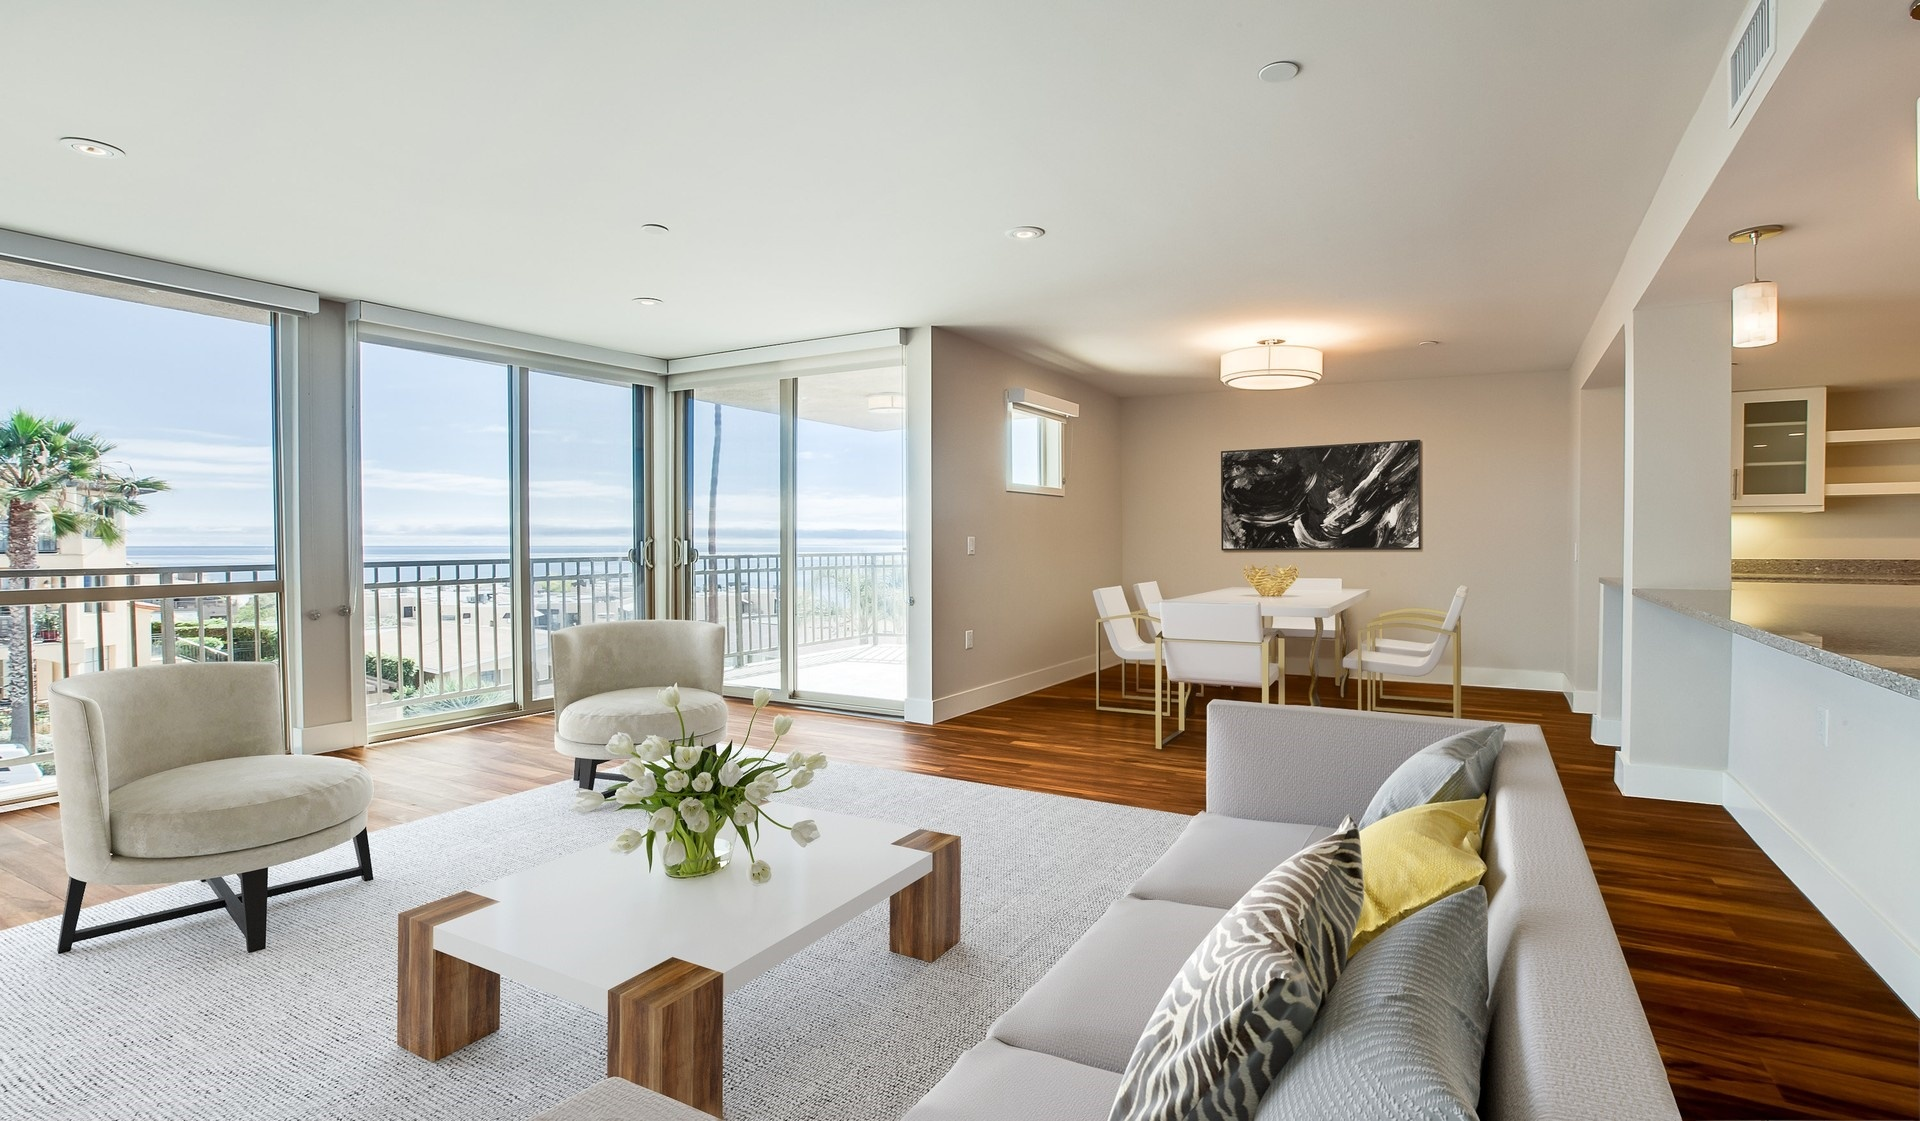 Ocean House Apartments - La Jolla, CA - Interior Living Area